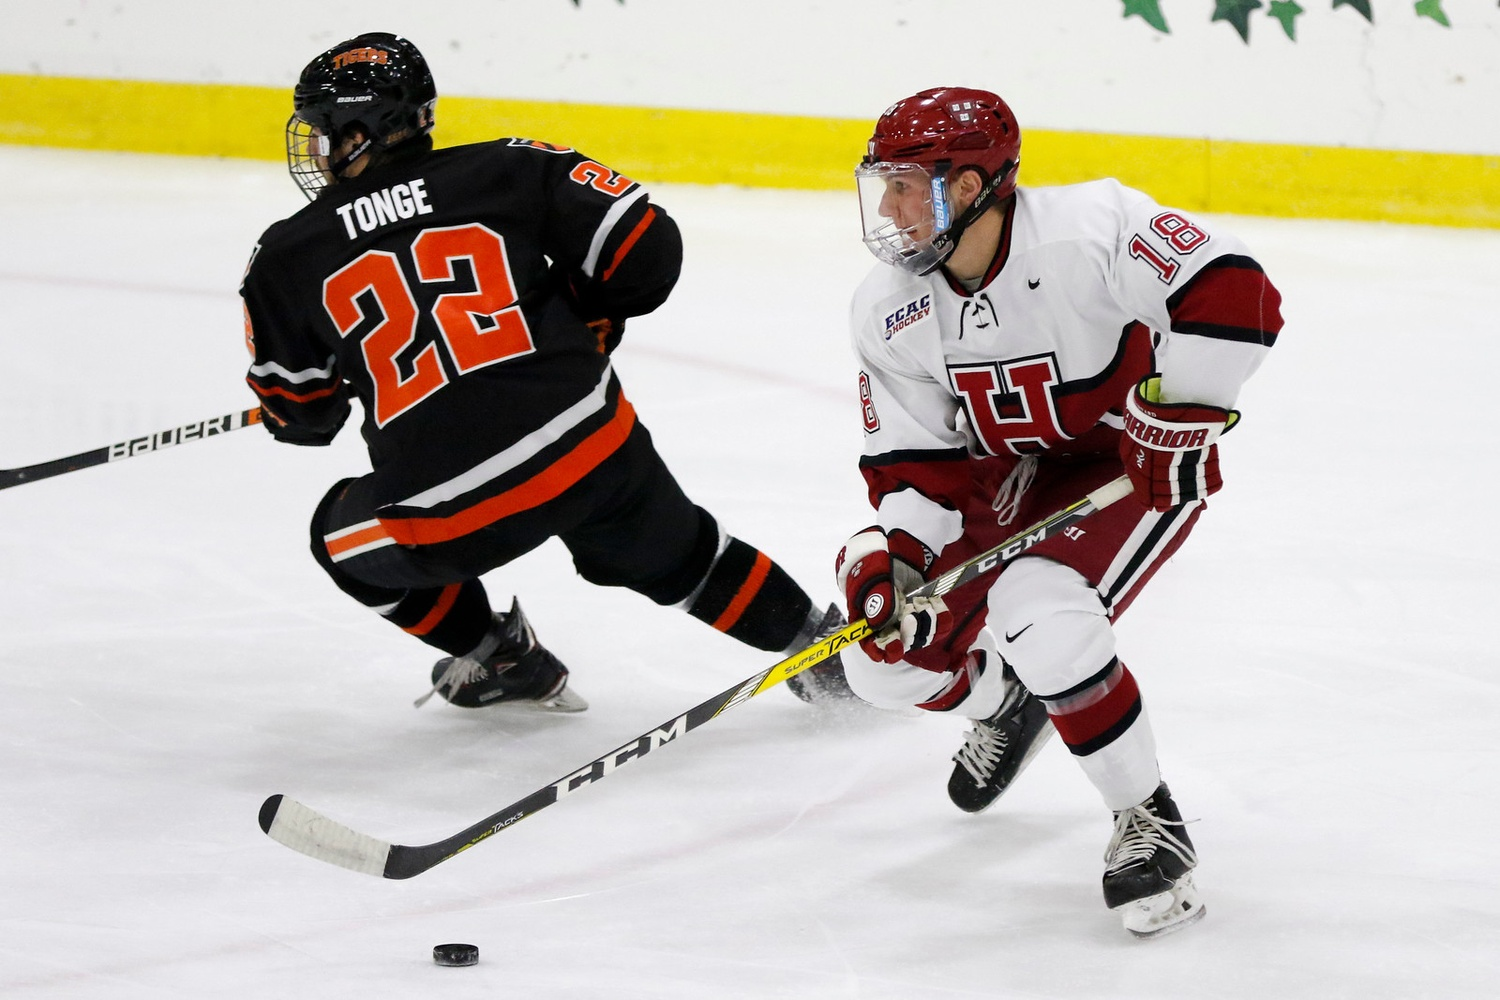 Junior defenseman Adam Fox quarterbacks the Harvard powerplay, which leads the nation in execution rate.